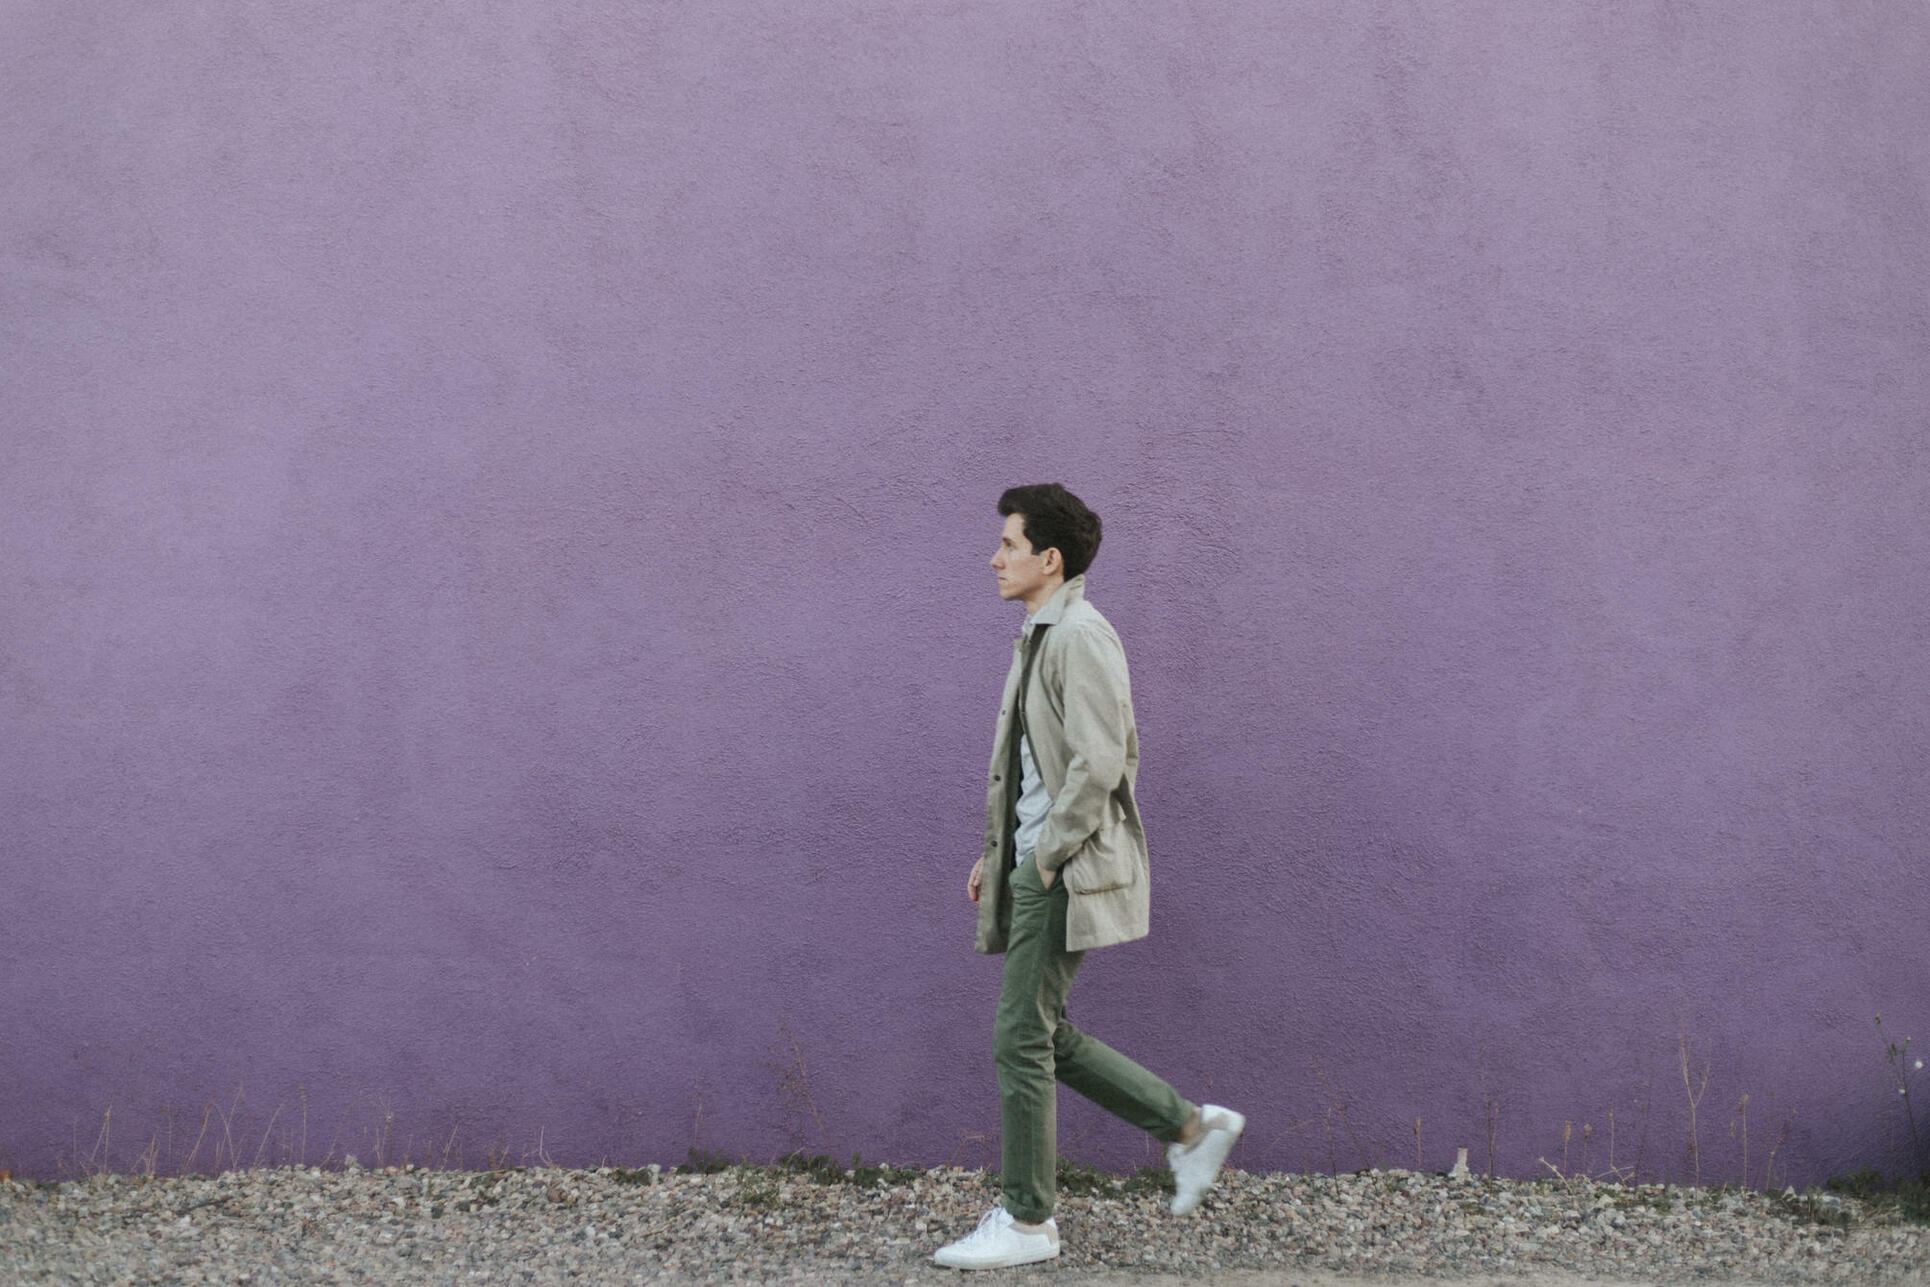 Walking in front of purple wall